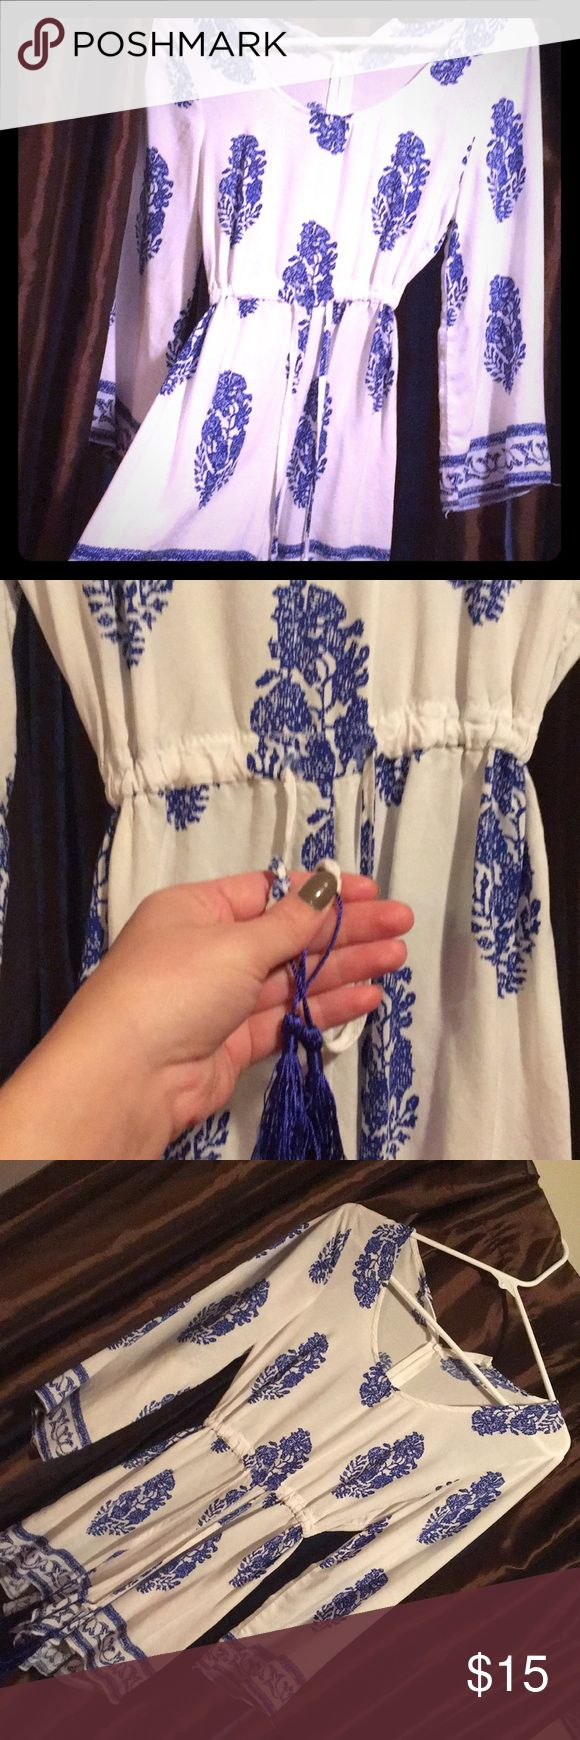 Small Zip up man made romper! Like new! Clean smoke and pet free home. Made for 2018 blue and white beautiful romper! Good for a small woman or teen! man made Dresses Mini